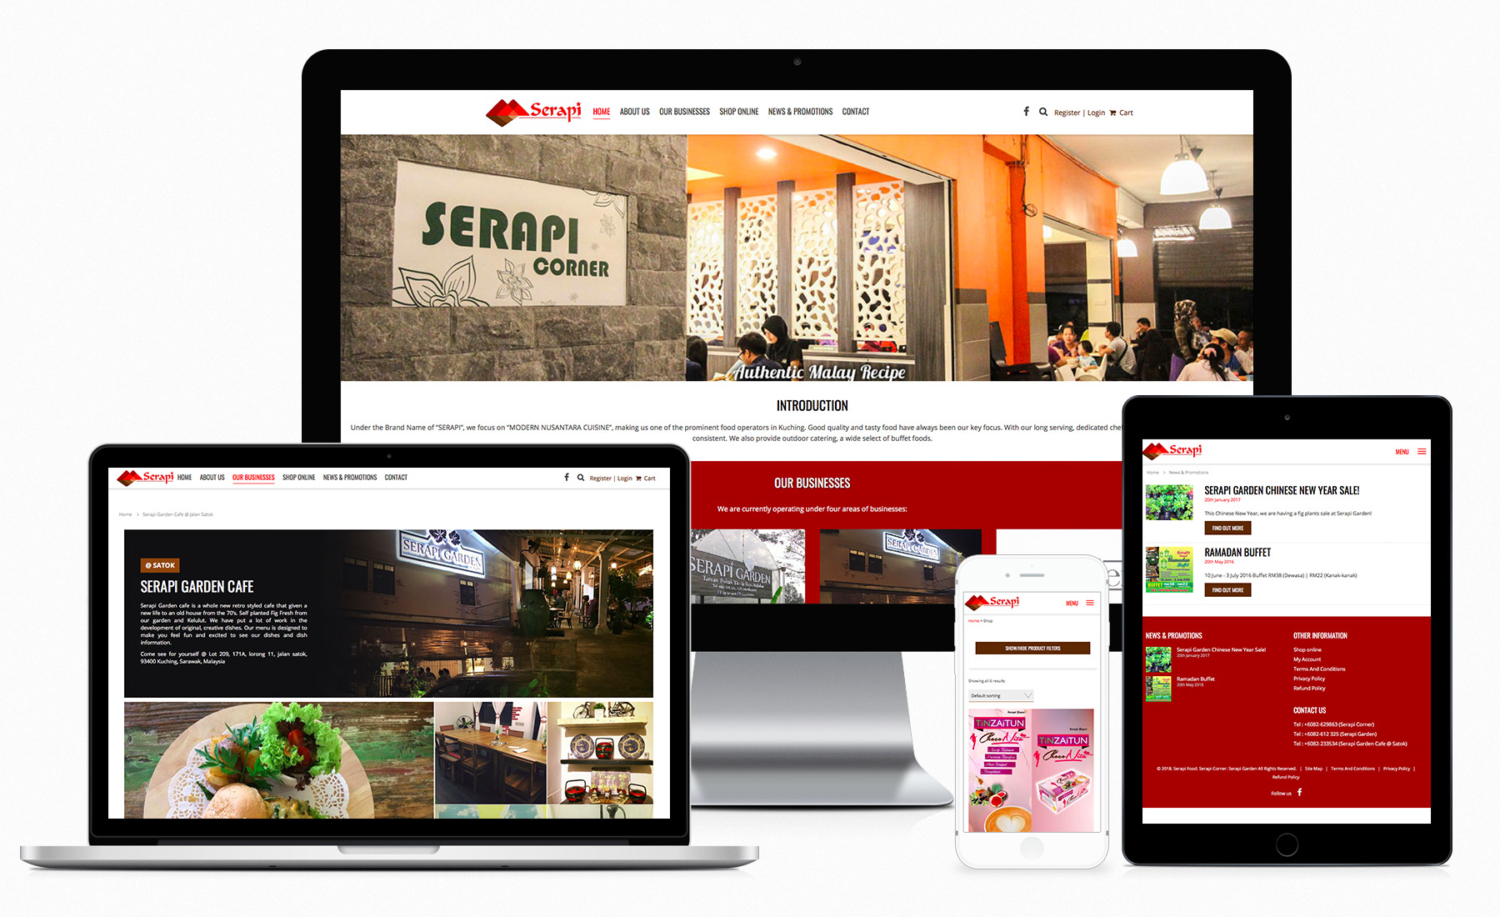 Serapi brand  – food operators website design